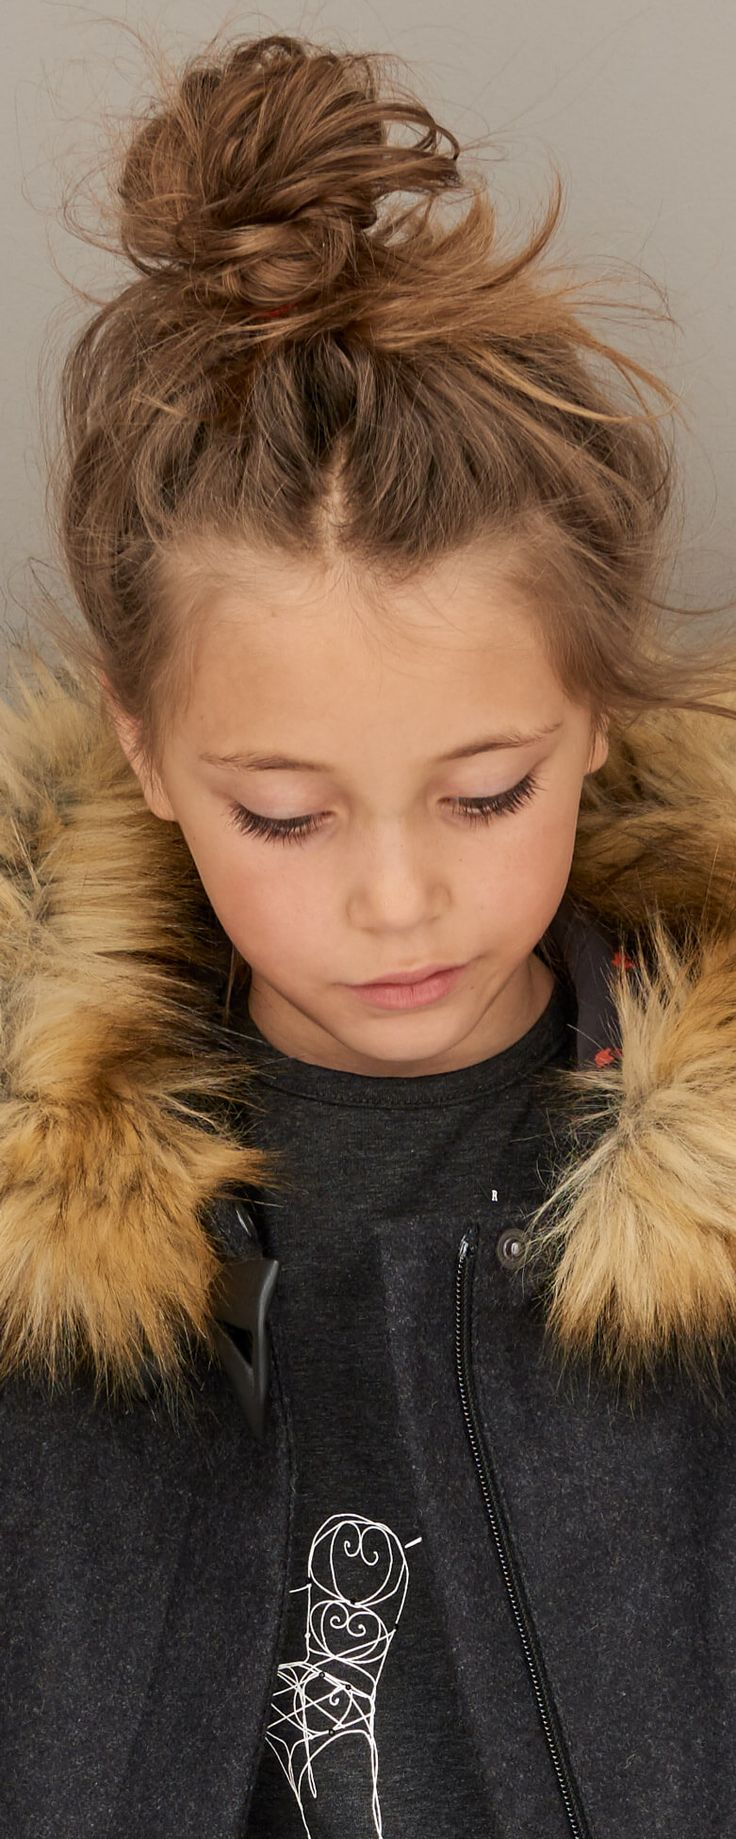 Cosy and stylish winter ahead. Nantissa duffle coat by Marèse Paris. #bigbenkids #marese #aw16